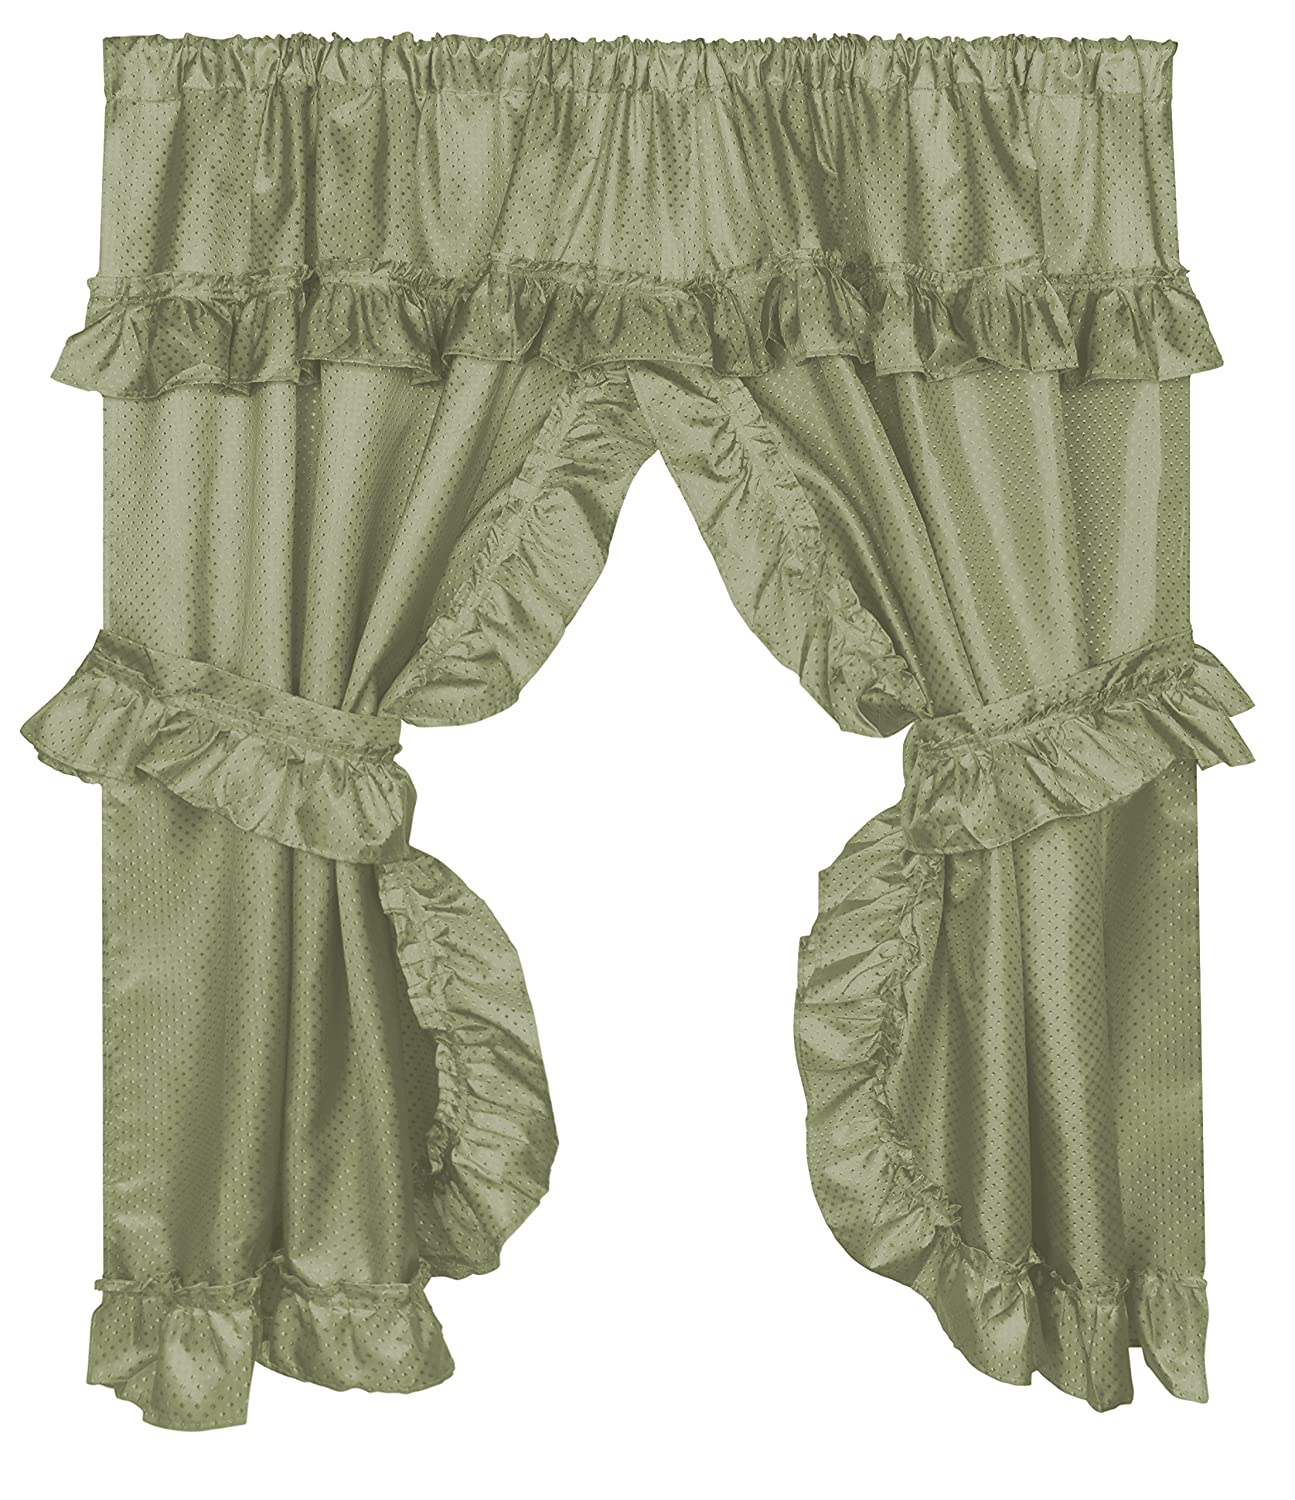 Carnation Home Fashions FWCD-L/42 Lauren Curtain with Ruffled Valance, Sage